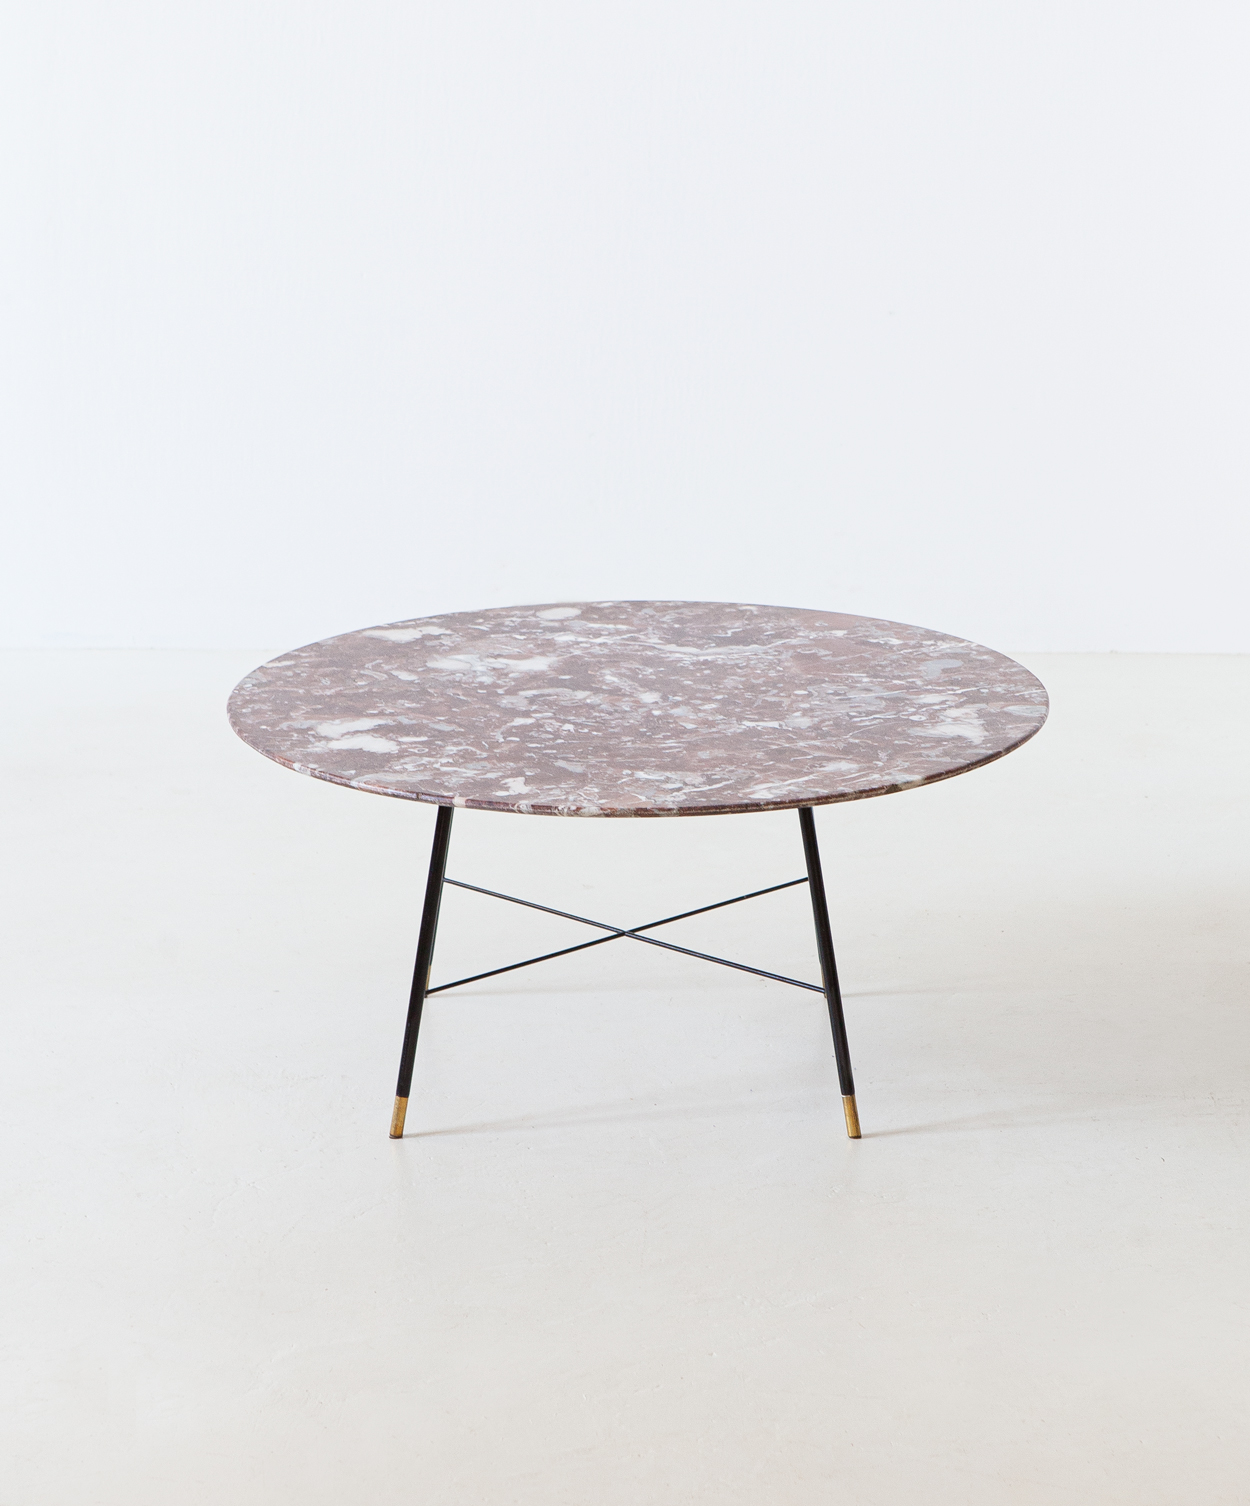 1950s-italian-marble-top-round-low-table-3-t85